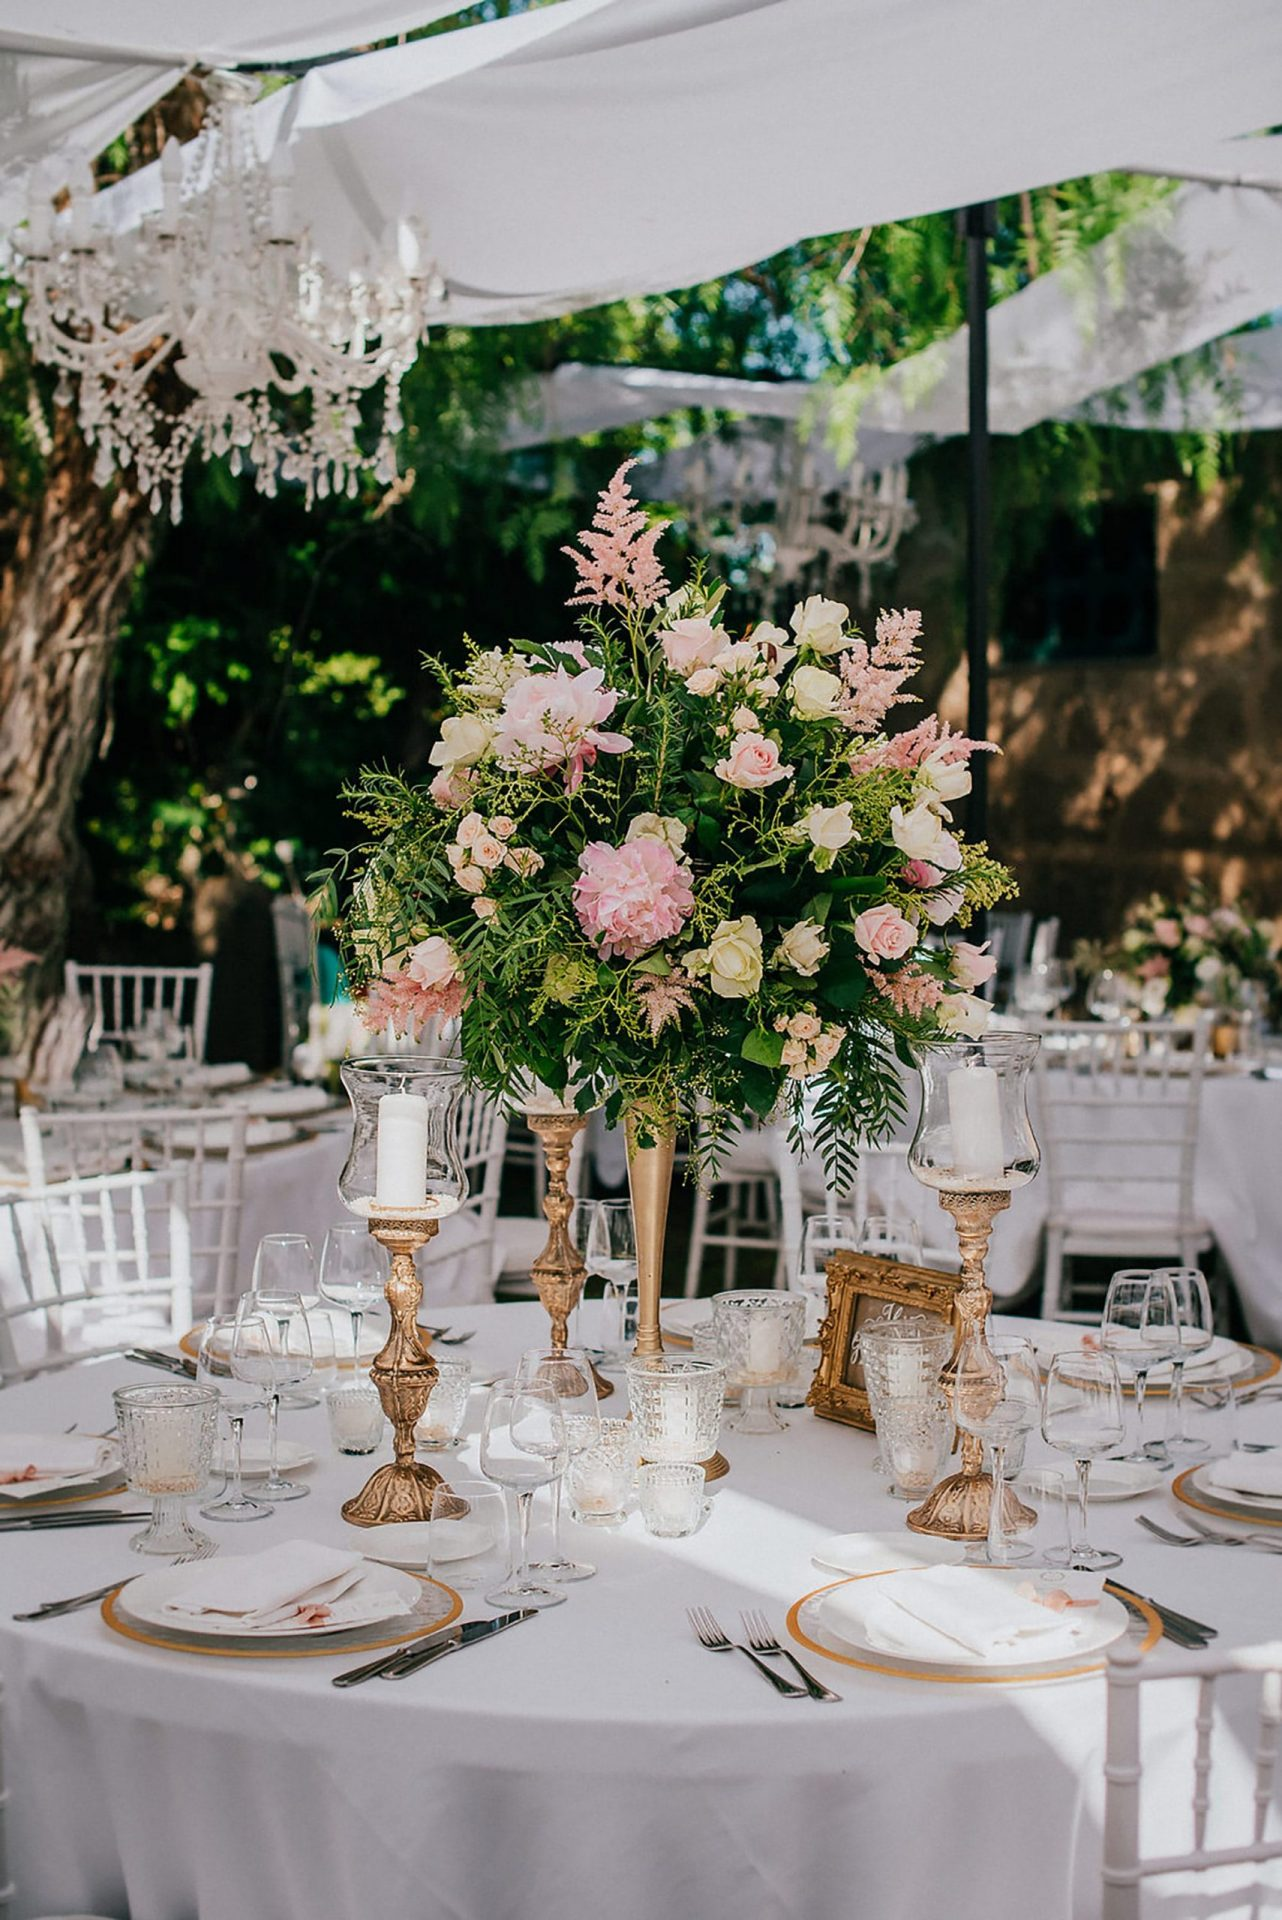 Ilaria e Giovanni, al fresco wedding, pastel tones and green flower centrepiece